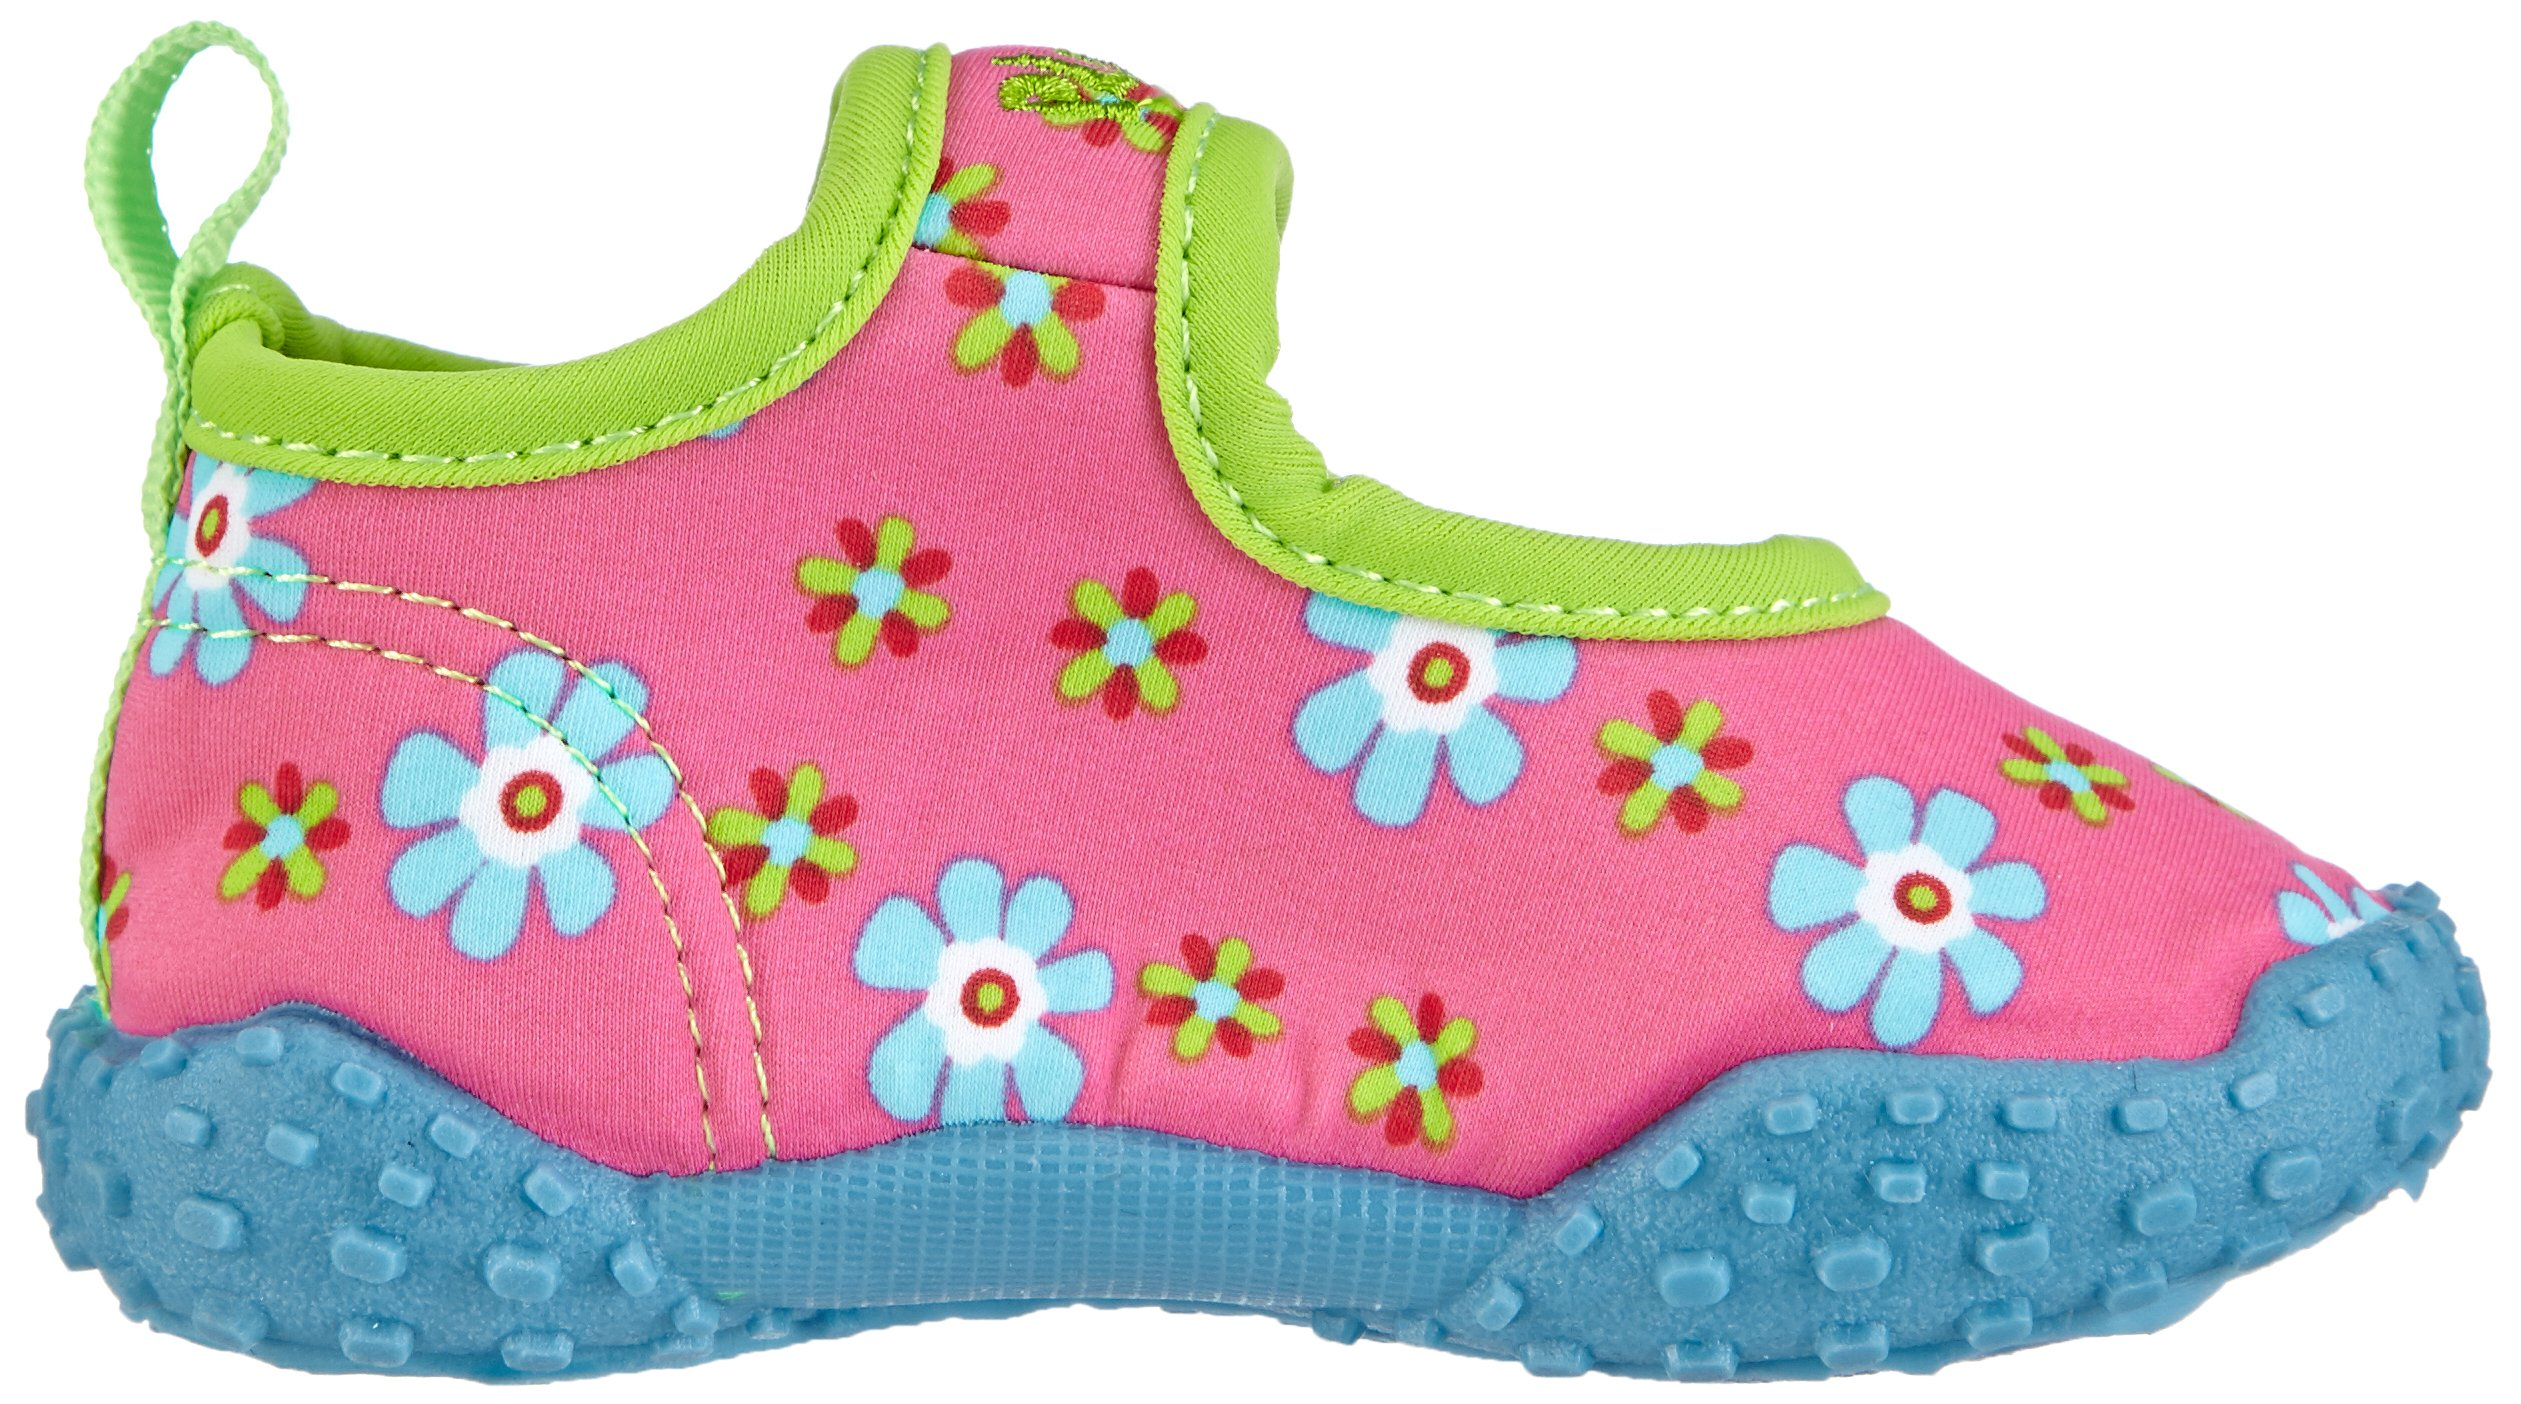 Playshoes Girl's UV Protection Flower Collection Aqua Swimming/Beach Shoes (4.5 M US Toddler) by Playshoes (Image #7)